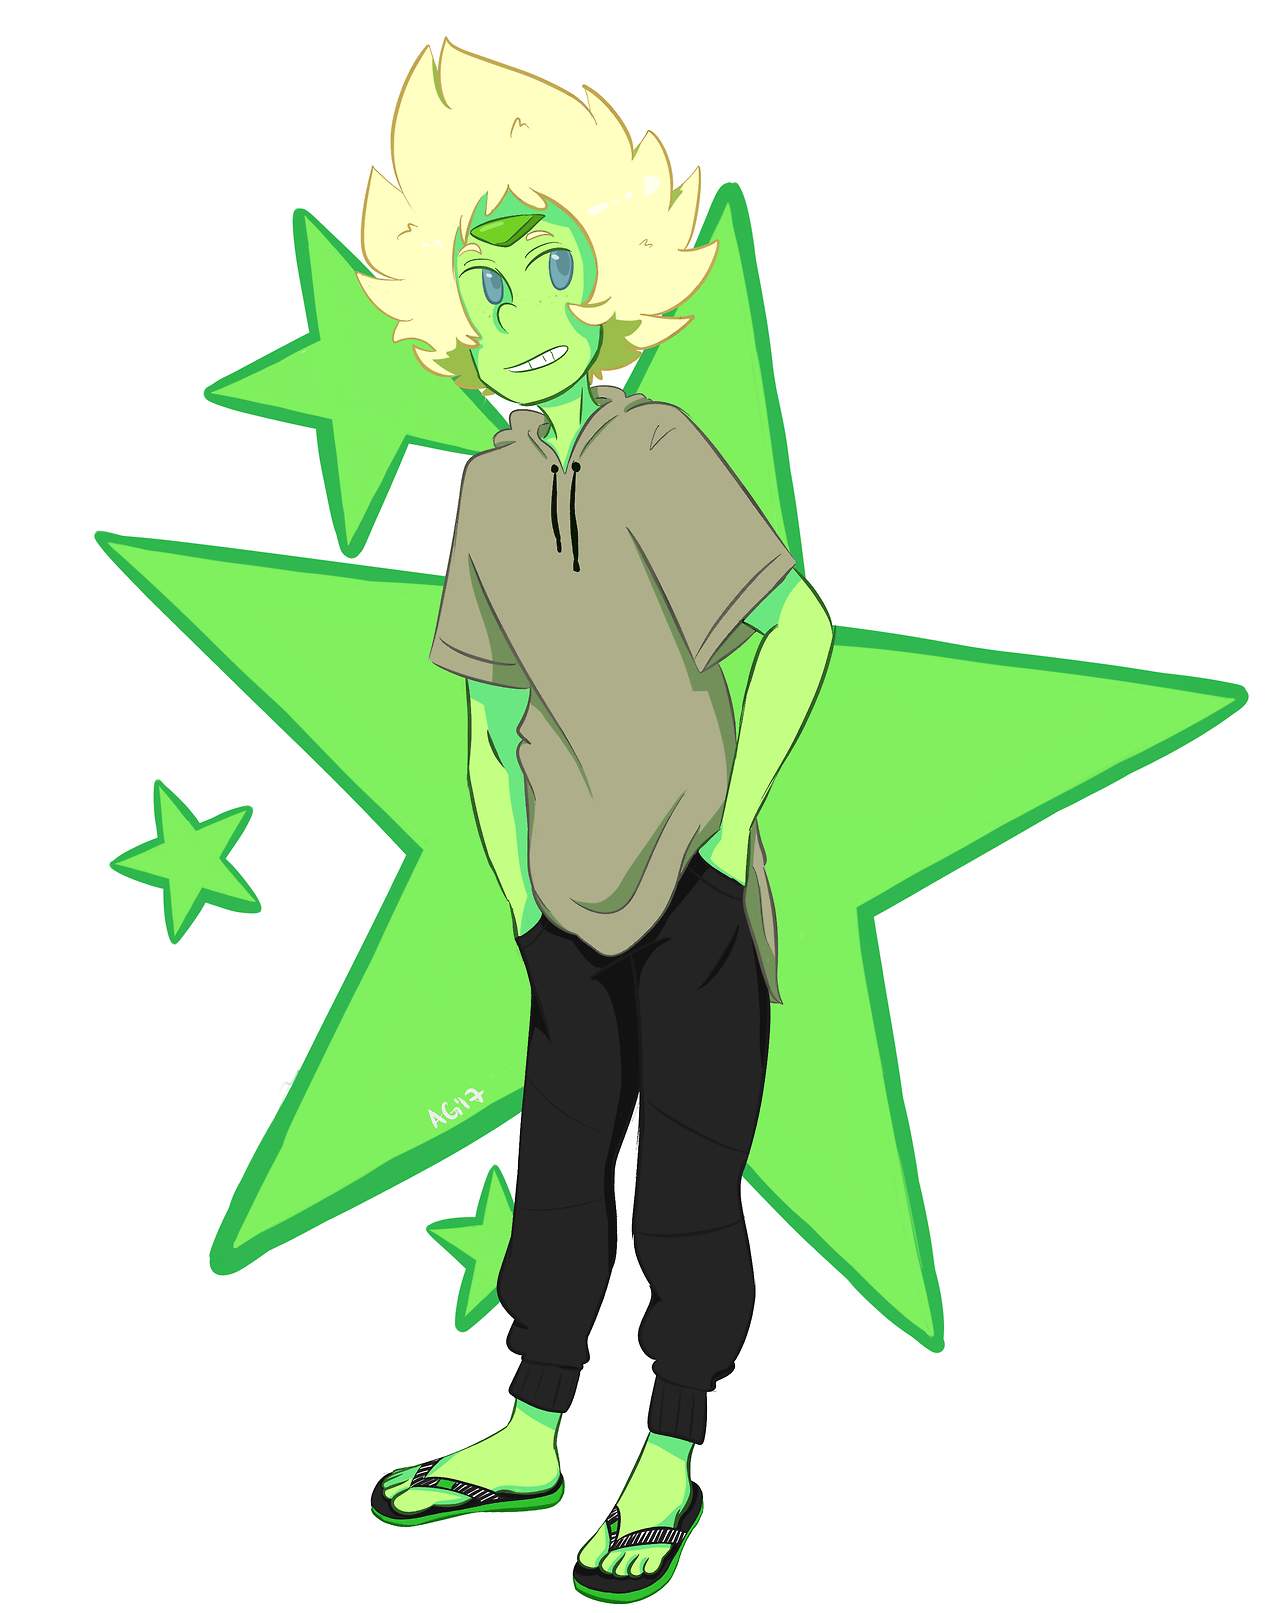 peridot in what i was wearing today